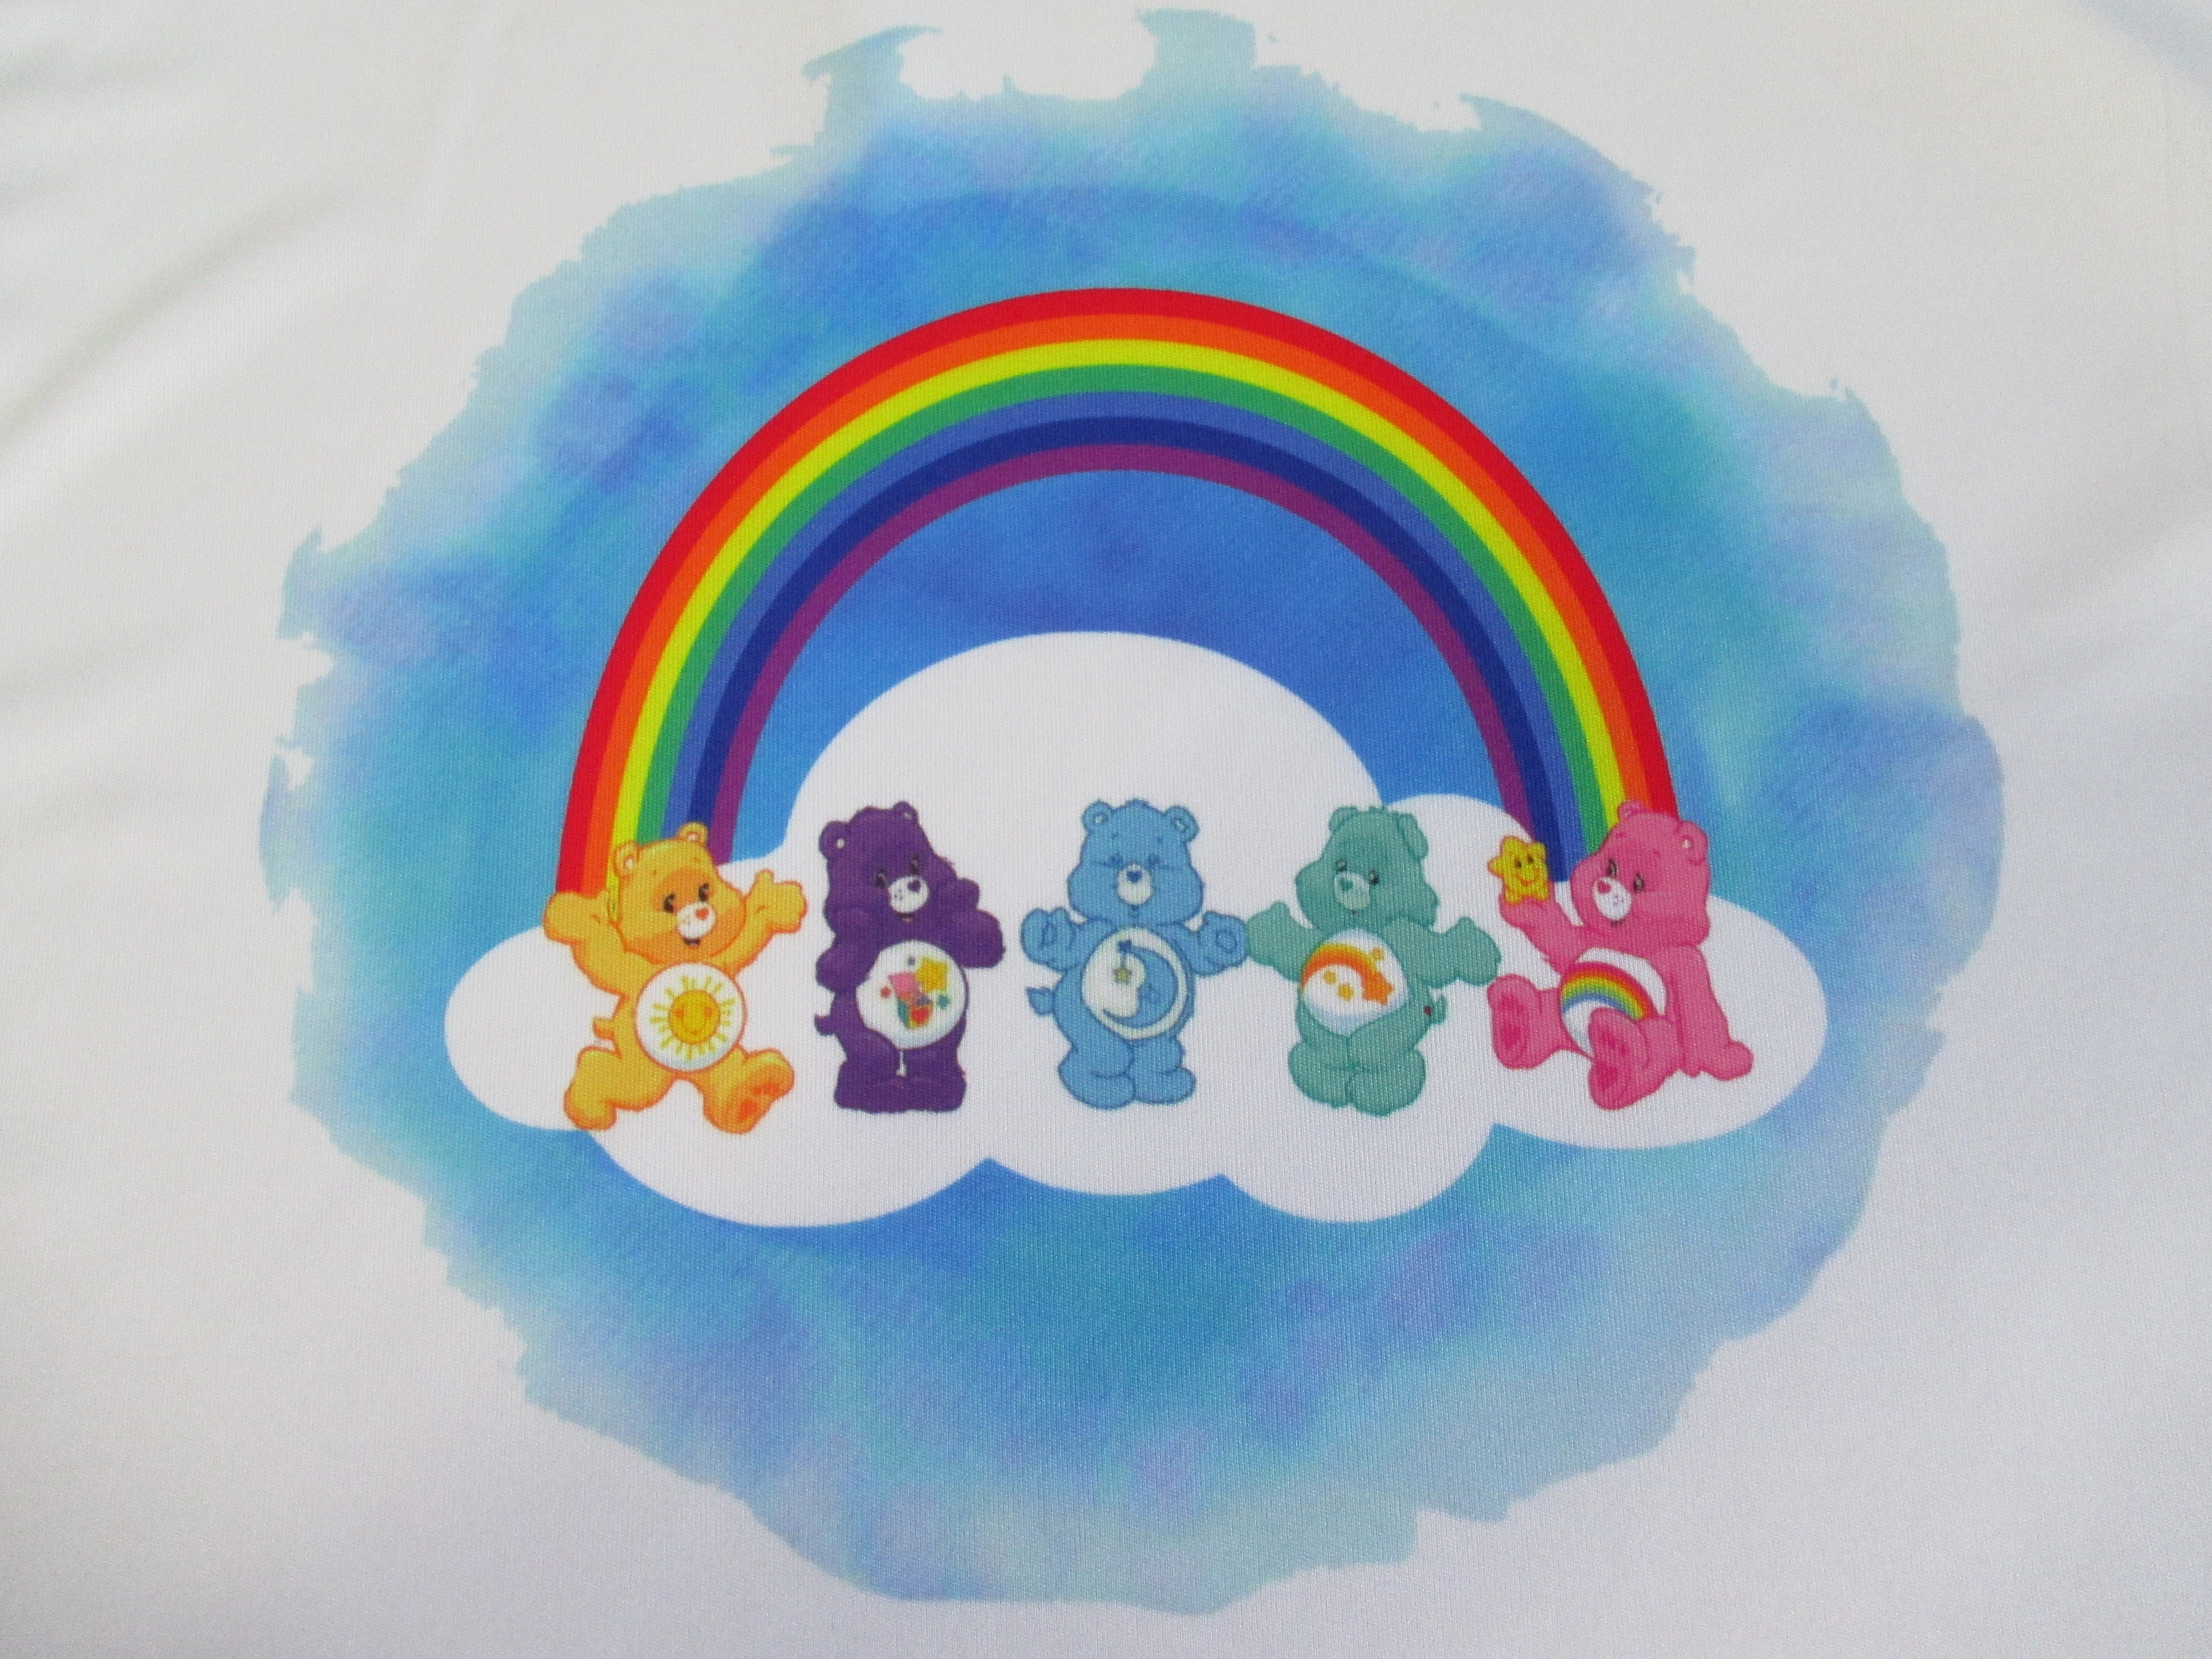 80s Tops, Shirts, T-shirts, Blouse   90s T-shirts Care Bears 1980s Inspired T Shirt SweatshirtTank Gift For Her Him Handmade Sublimation $14.99 AT vintagedancer.com